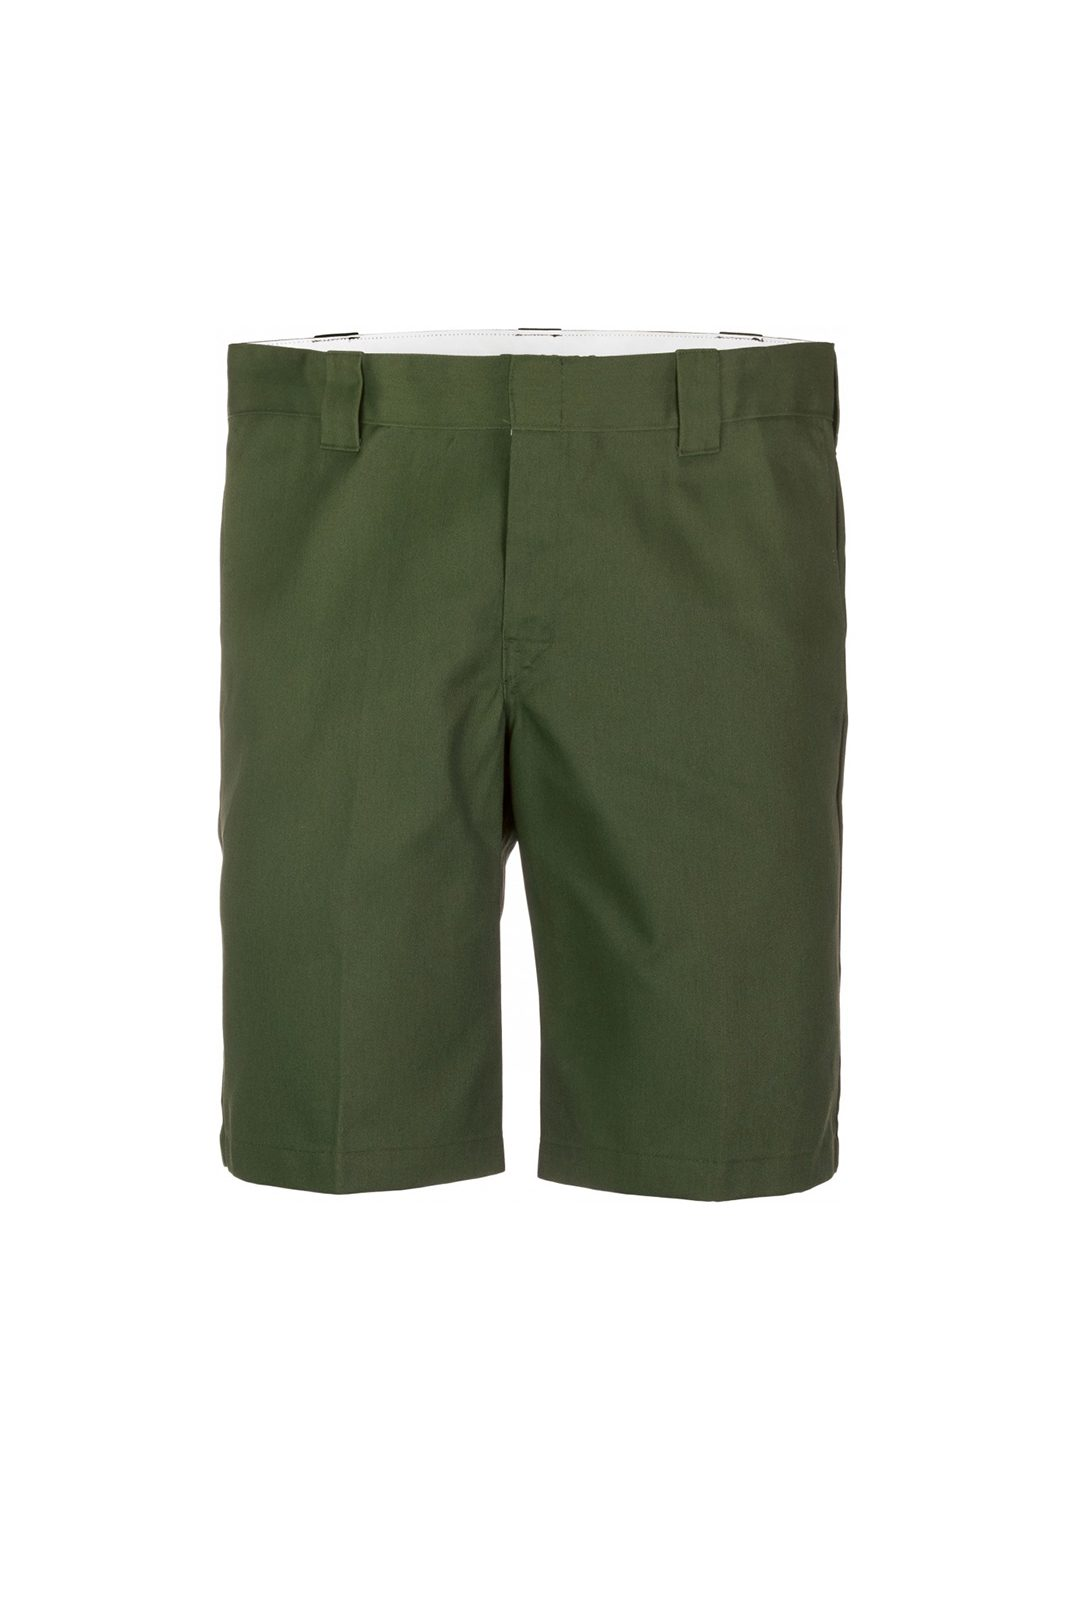 "11"" Slim Straight Work Shorts Olive Green"